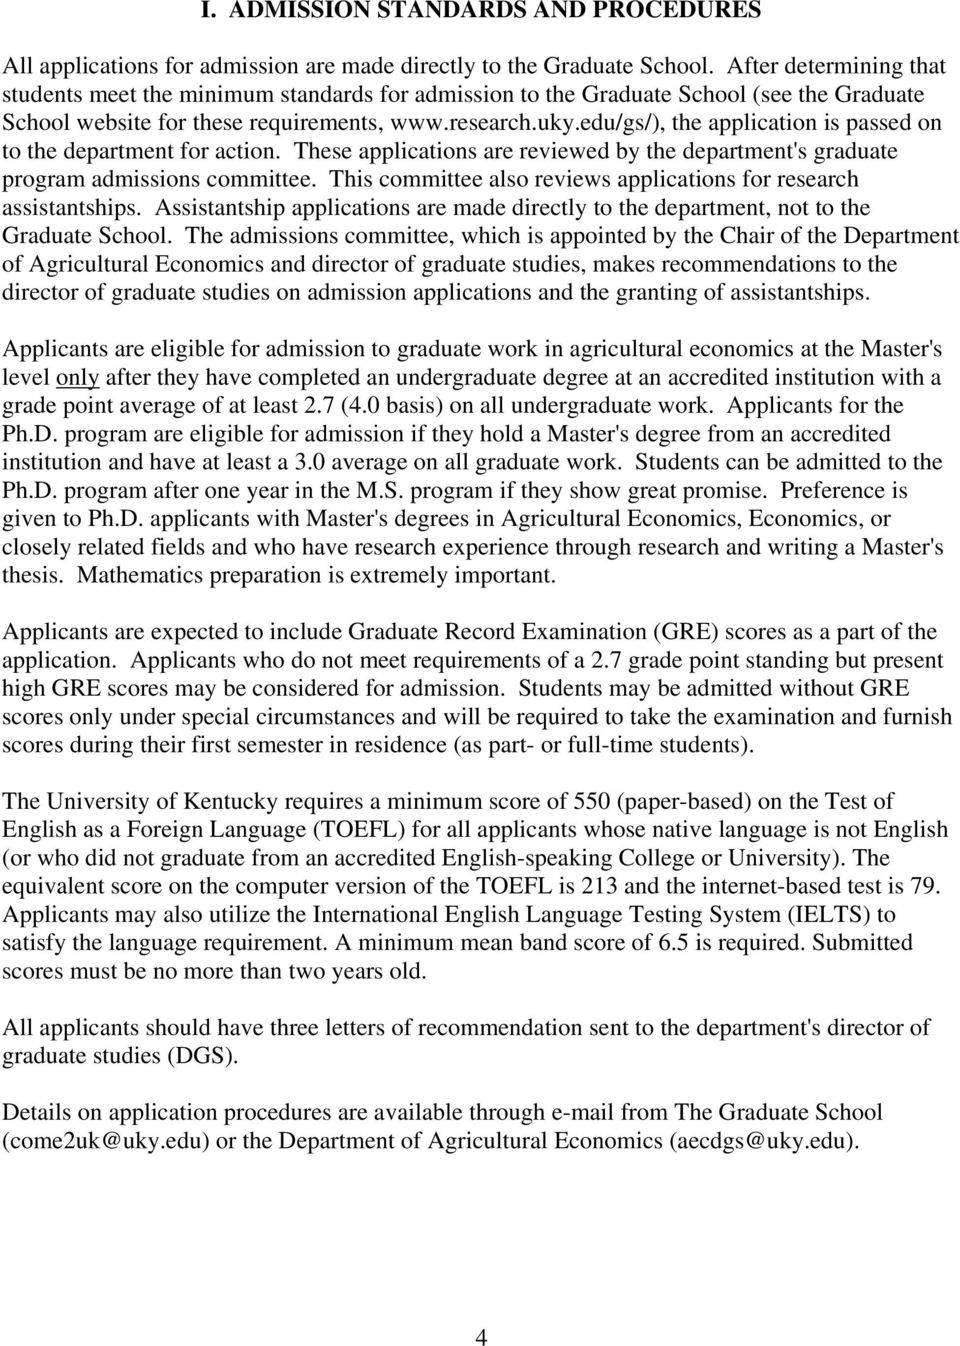 edu/gs/), the application is passed on to the department for action. These applications are reviewed by the department's graduate program admissions committee.